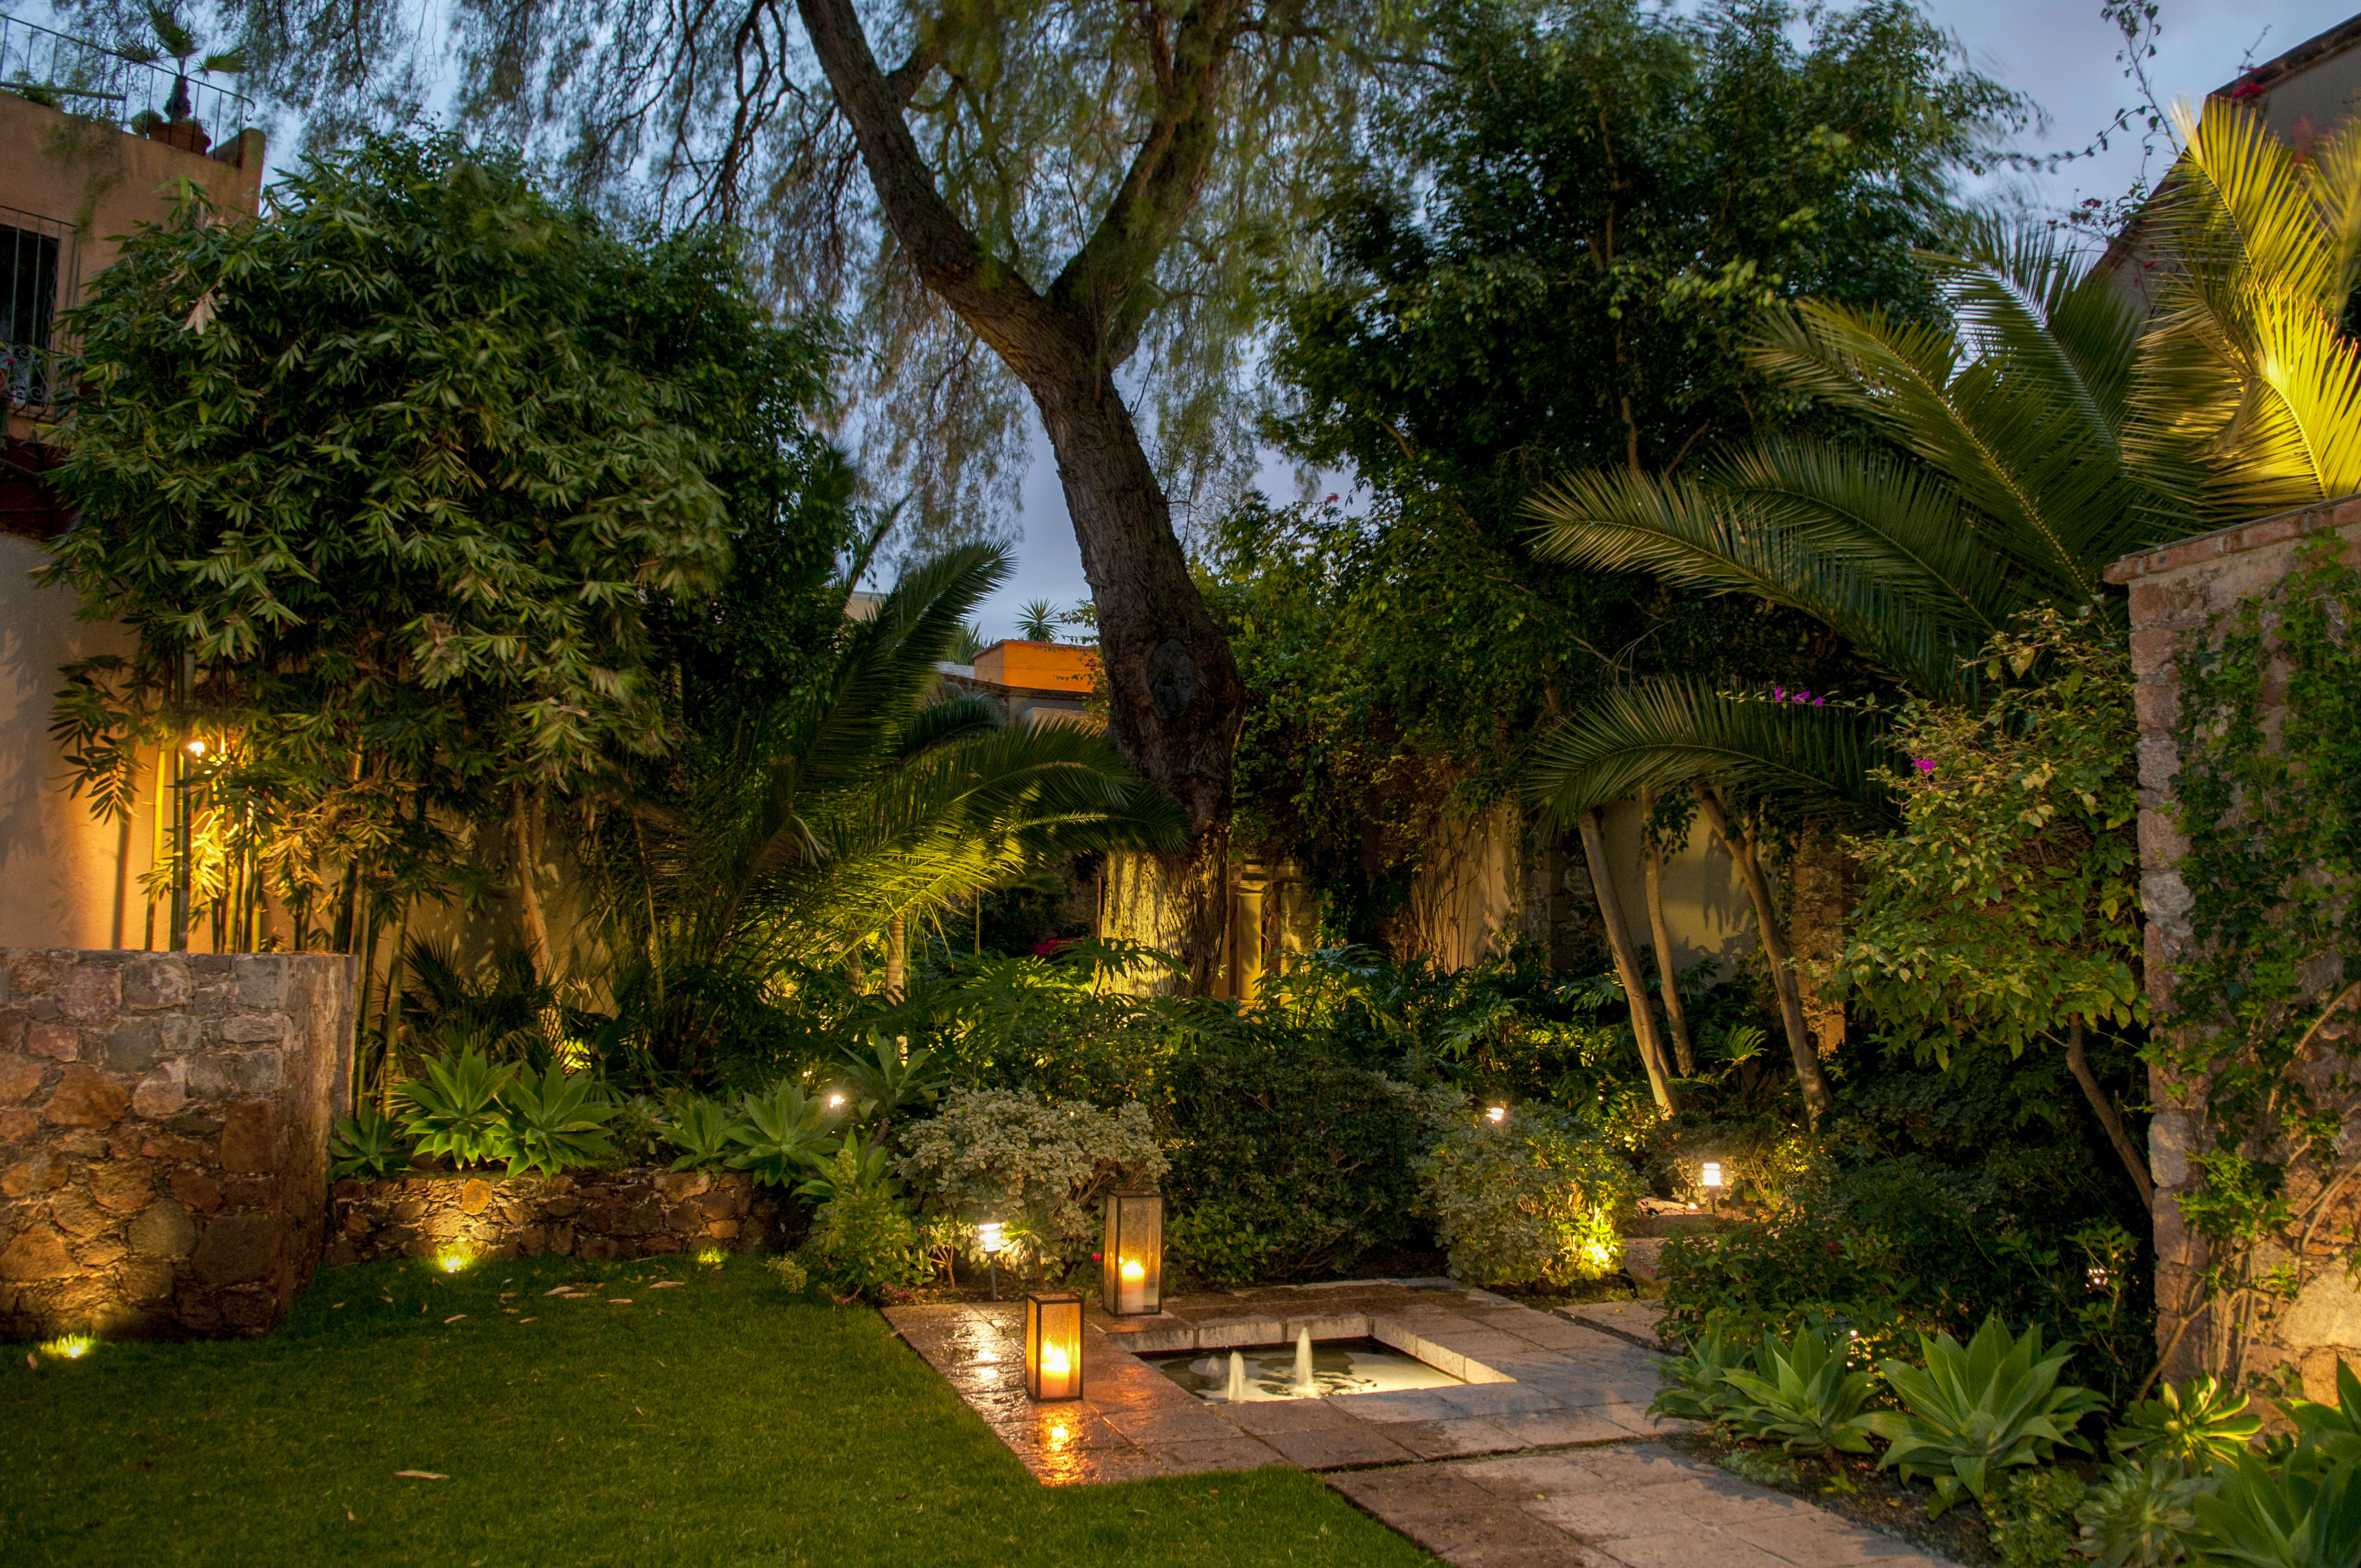 Casa Alegria garden at sunset